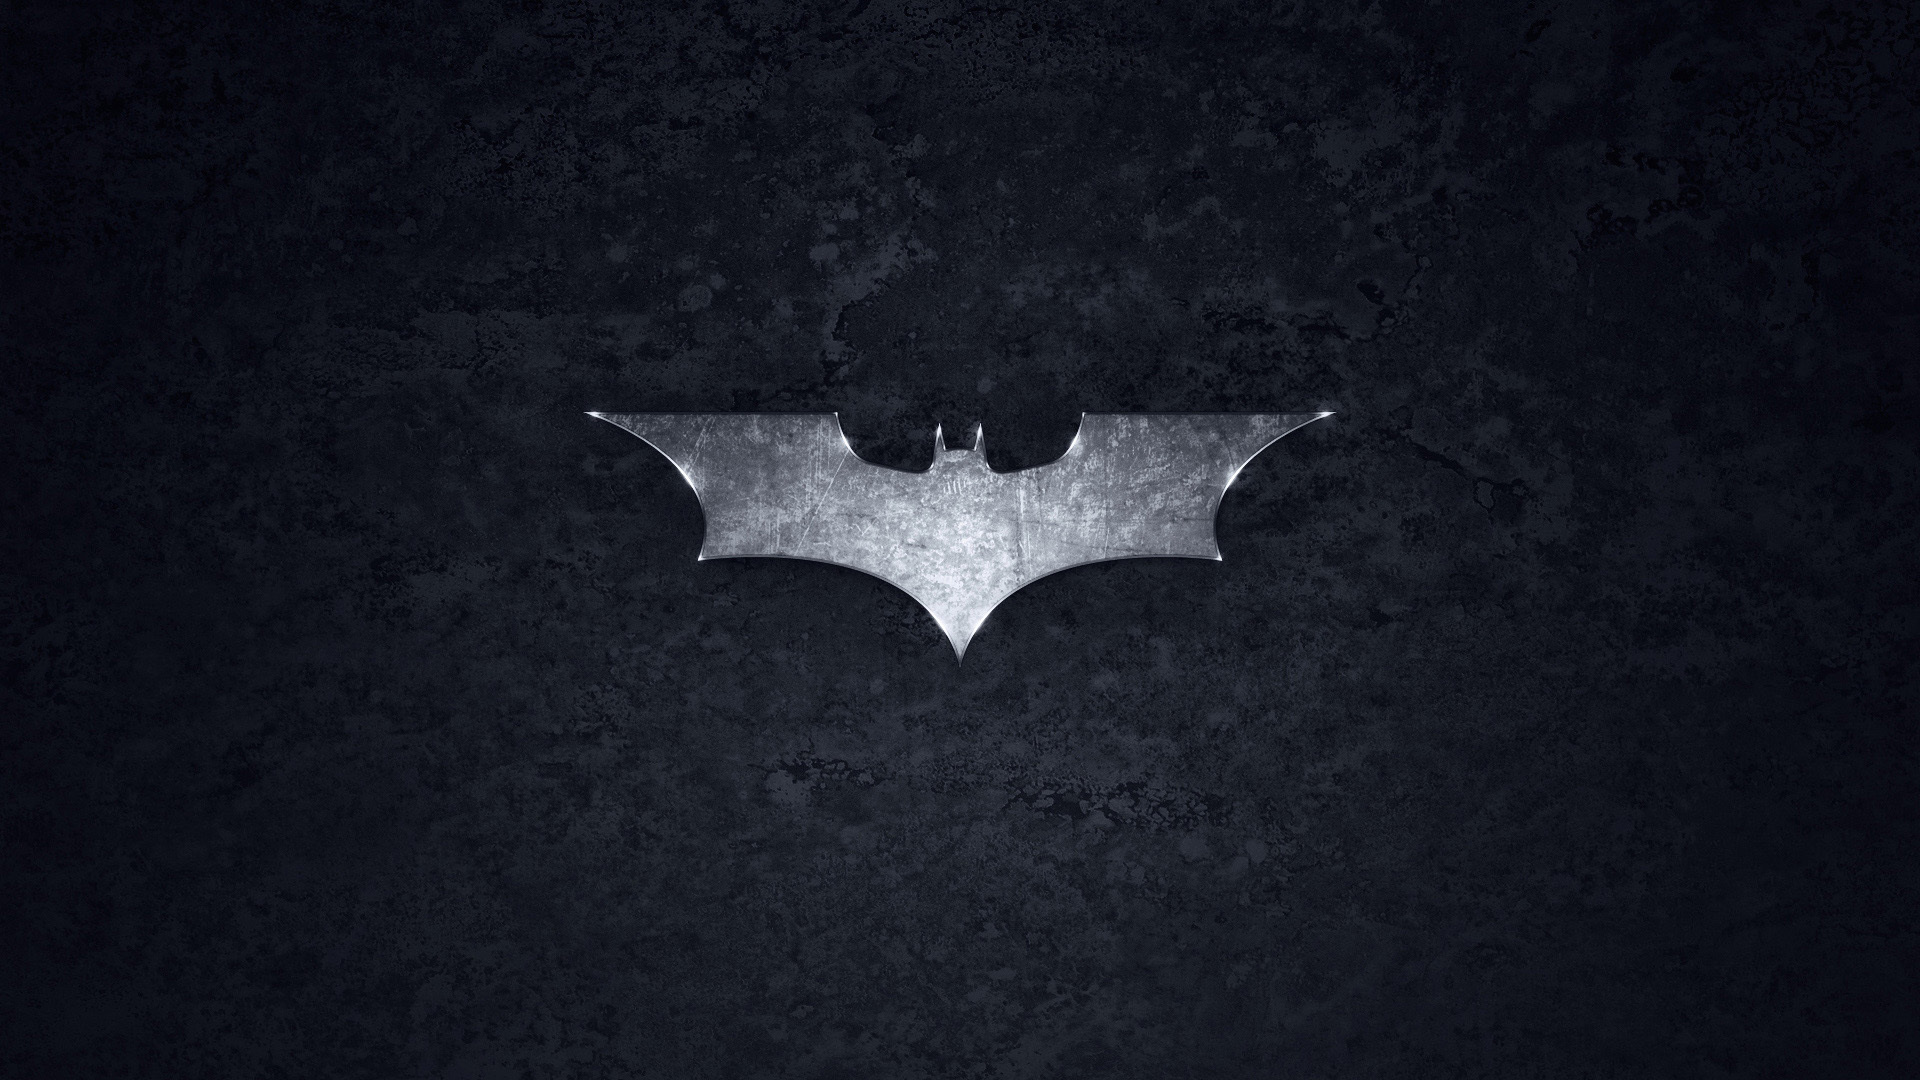 22123 download wallpaper Cinema, Background, Logos, Batman screensavers and pictures for free